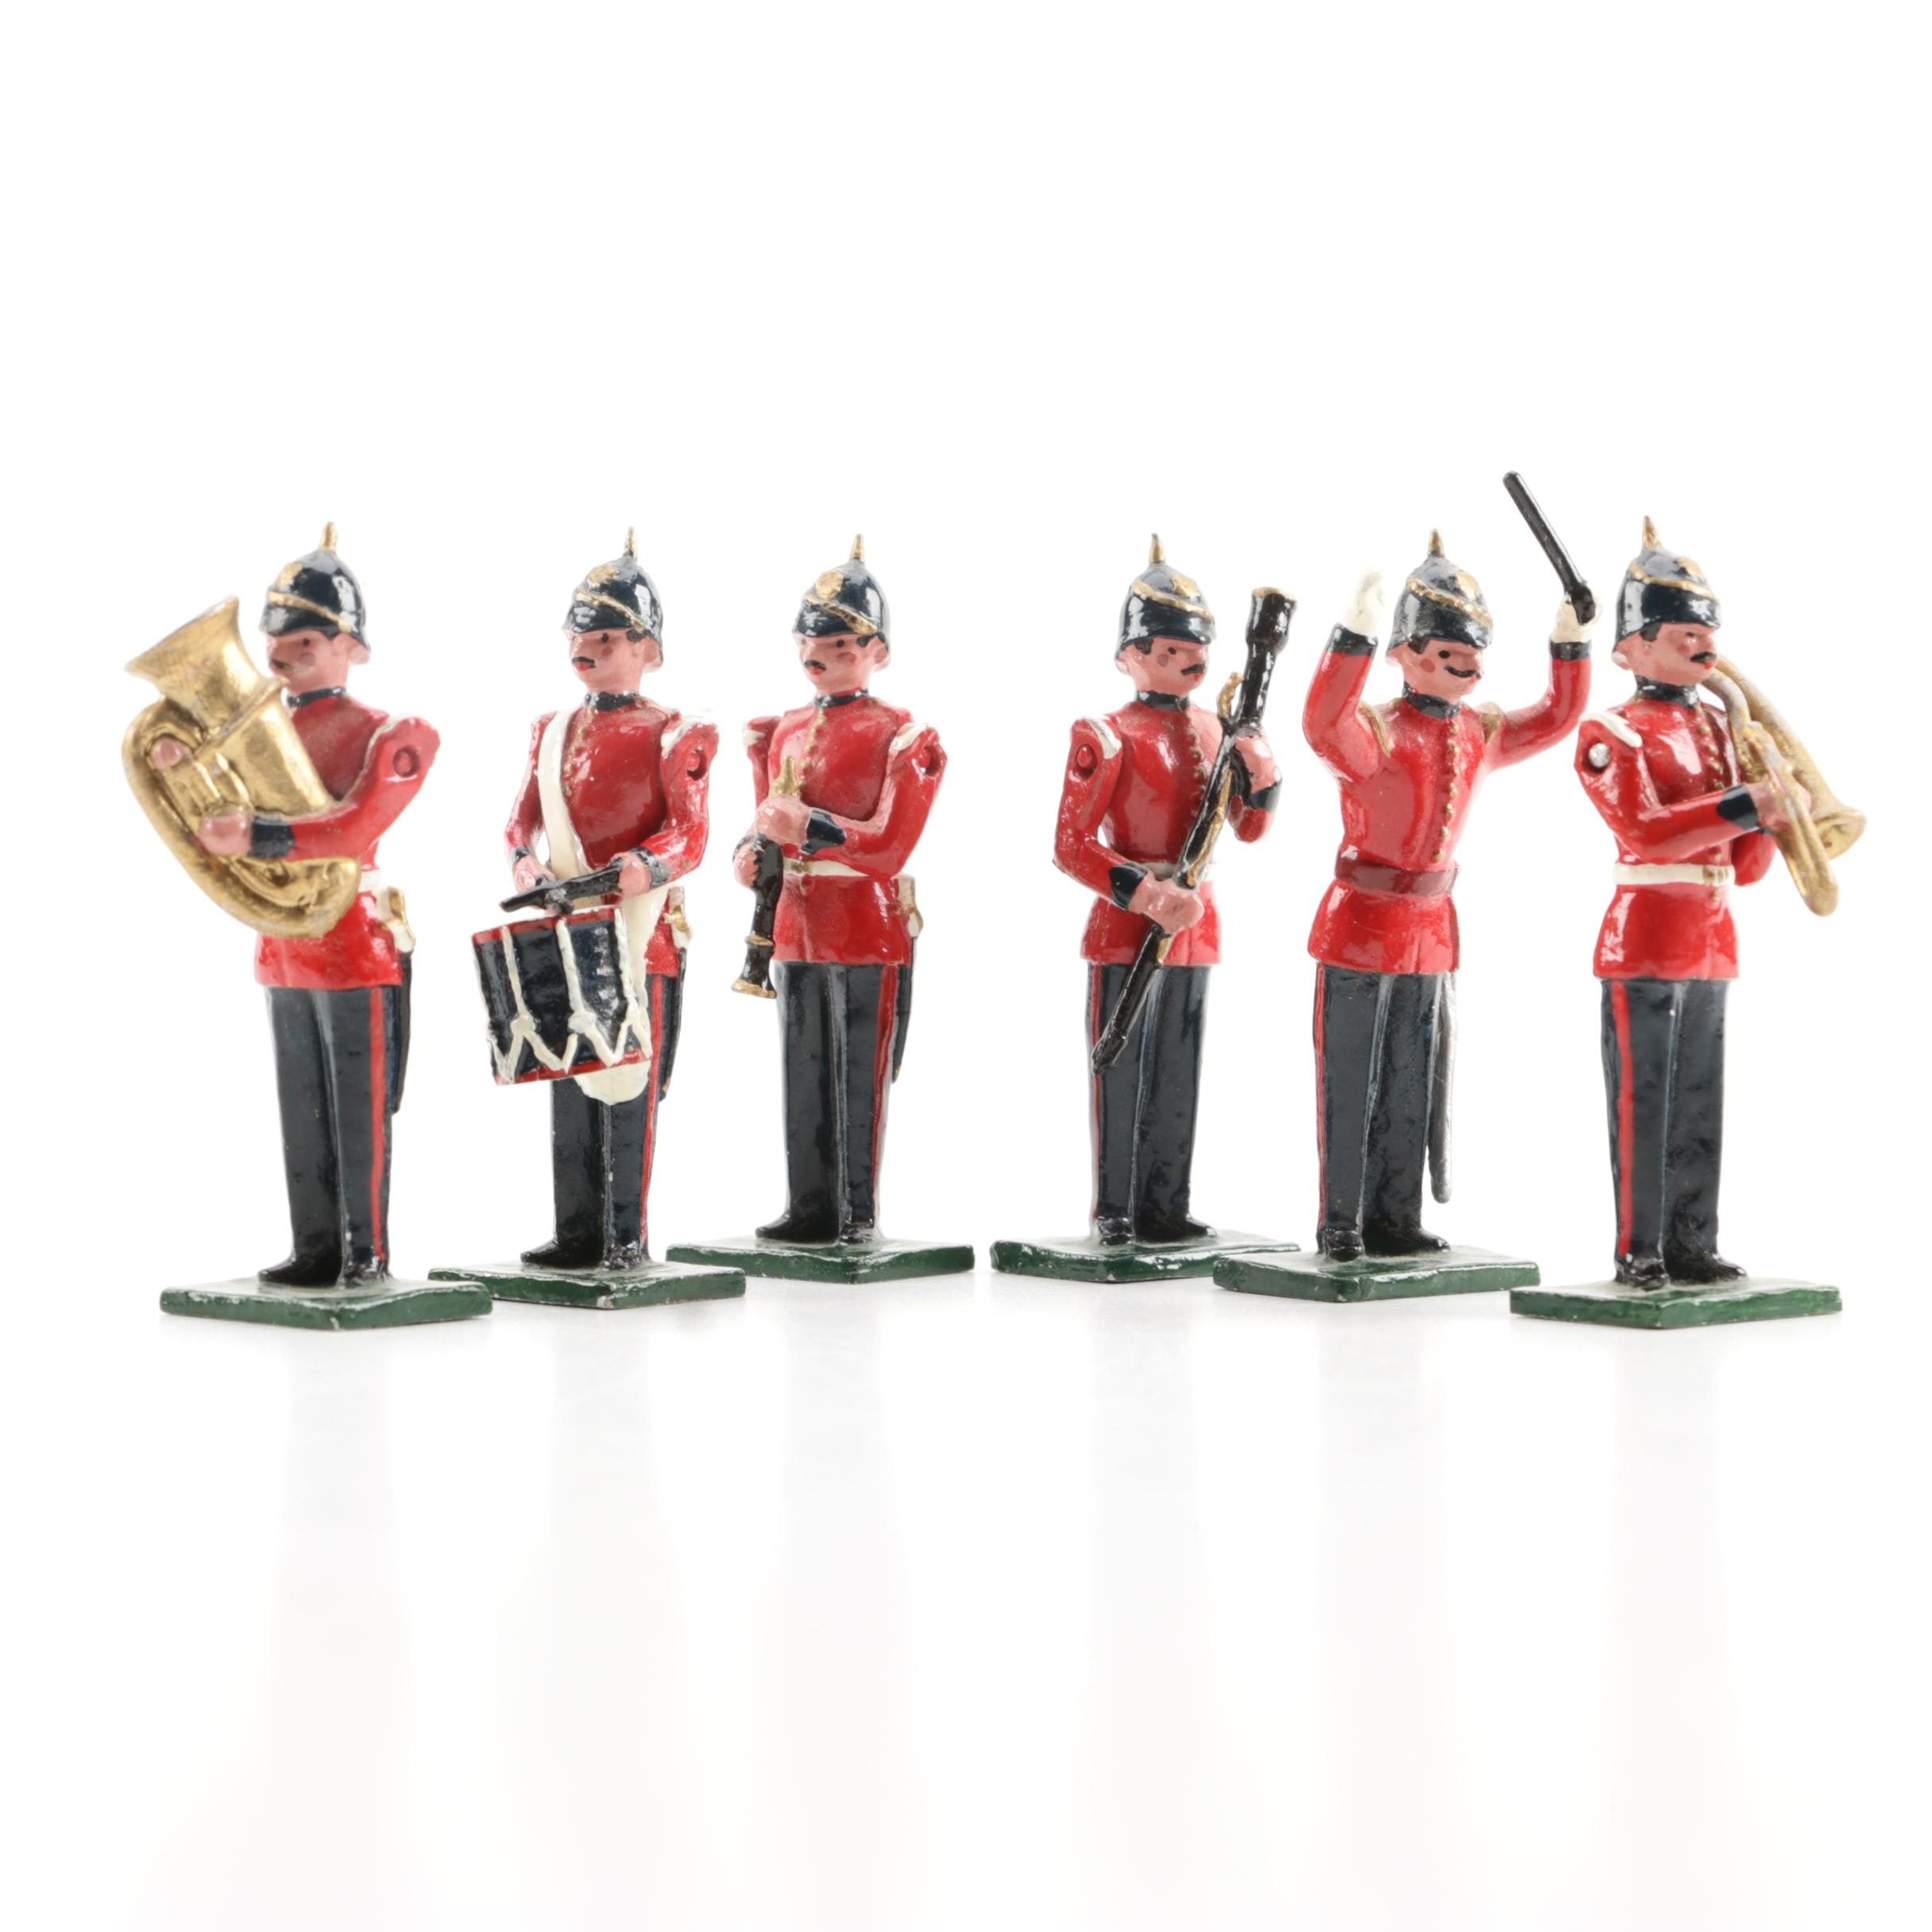 Metal Figurines of British Military Musicians by Blenheim